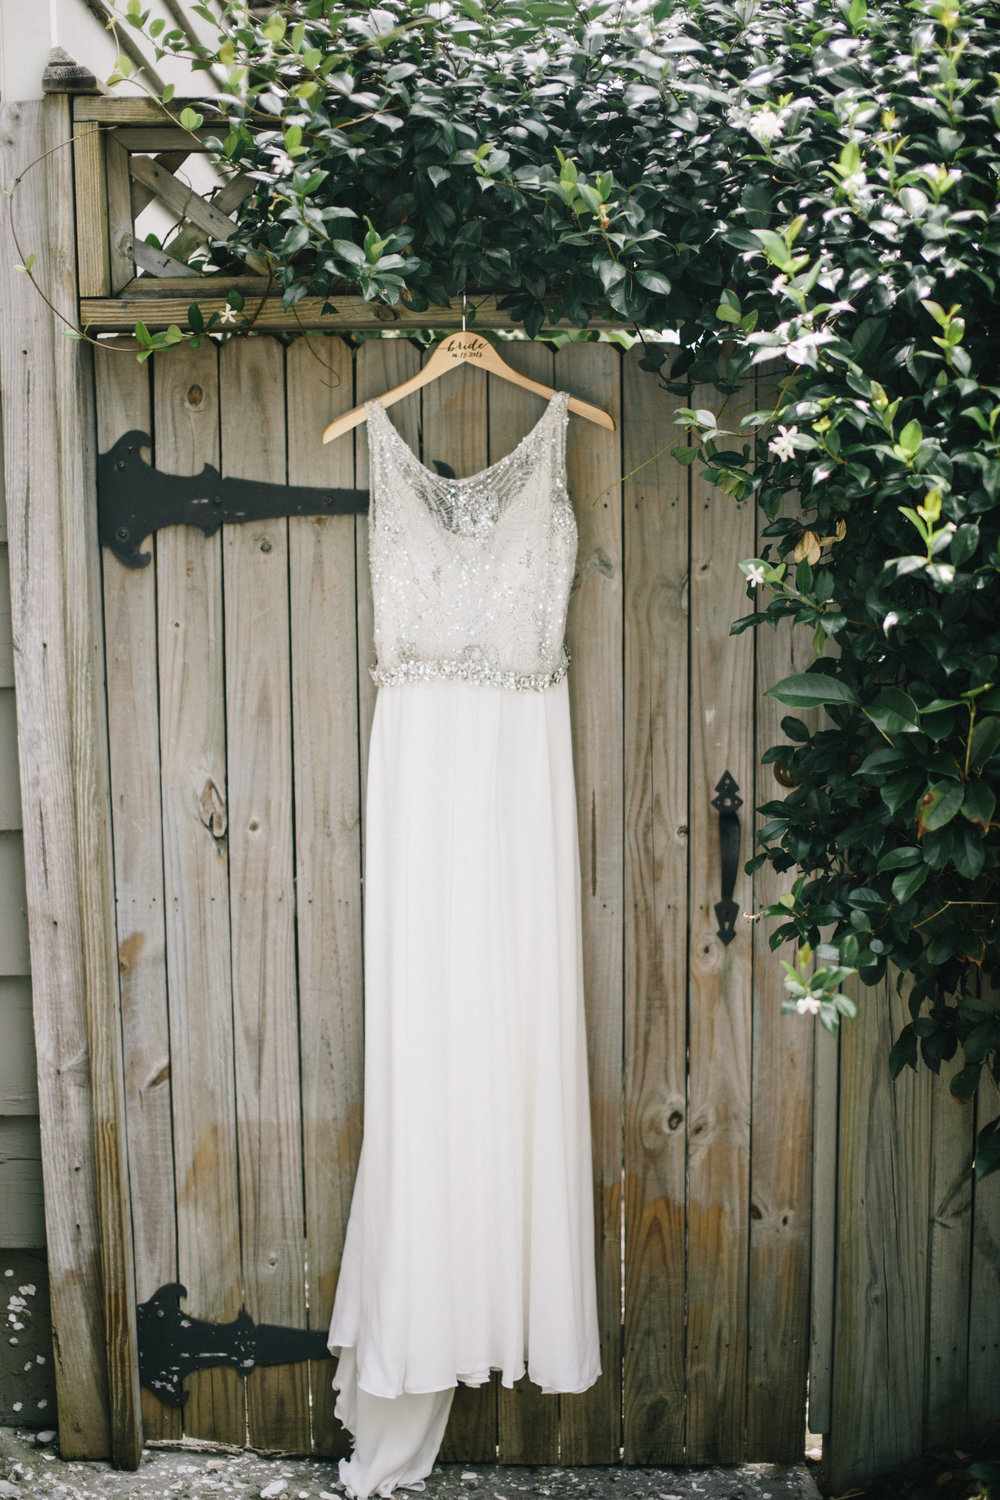 mackensey-alexander-photography-ivory-and-beau-bridal-boutique-from-this-day-forward-wedding-planning-sarah-seven-gwen-savannah-bridal-boutique-savannah-wedding-dresses-savannah-bridal-boutique-savannah-wedding-planner-savannah-weddings-1.jpg